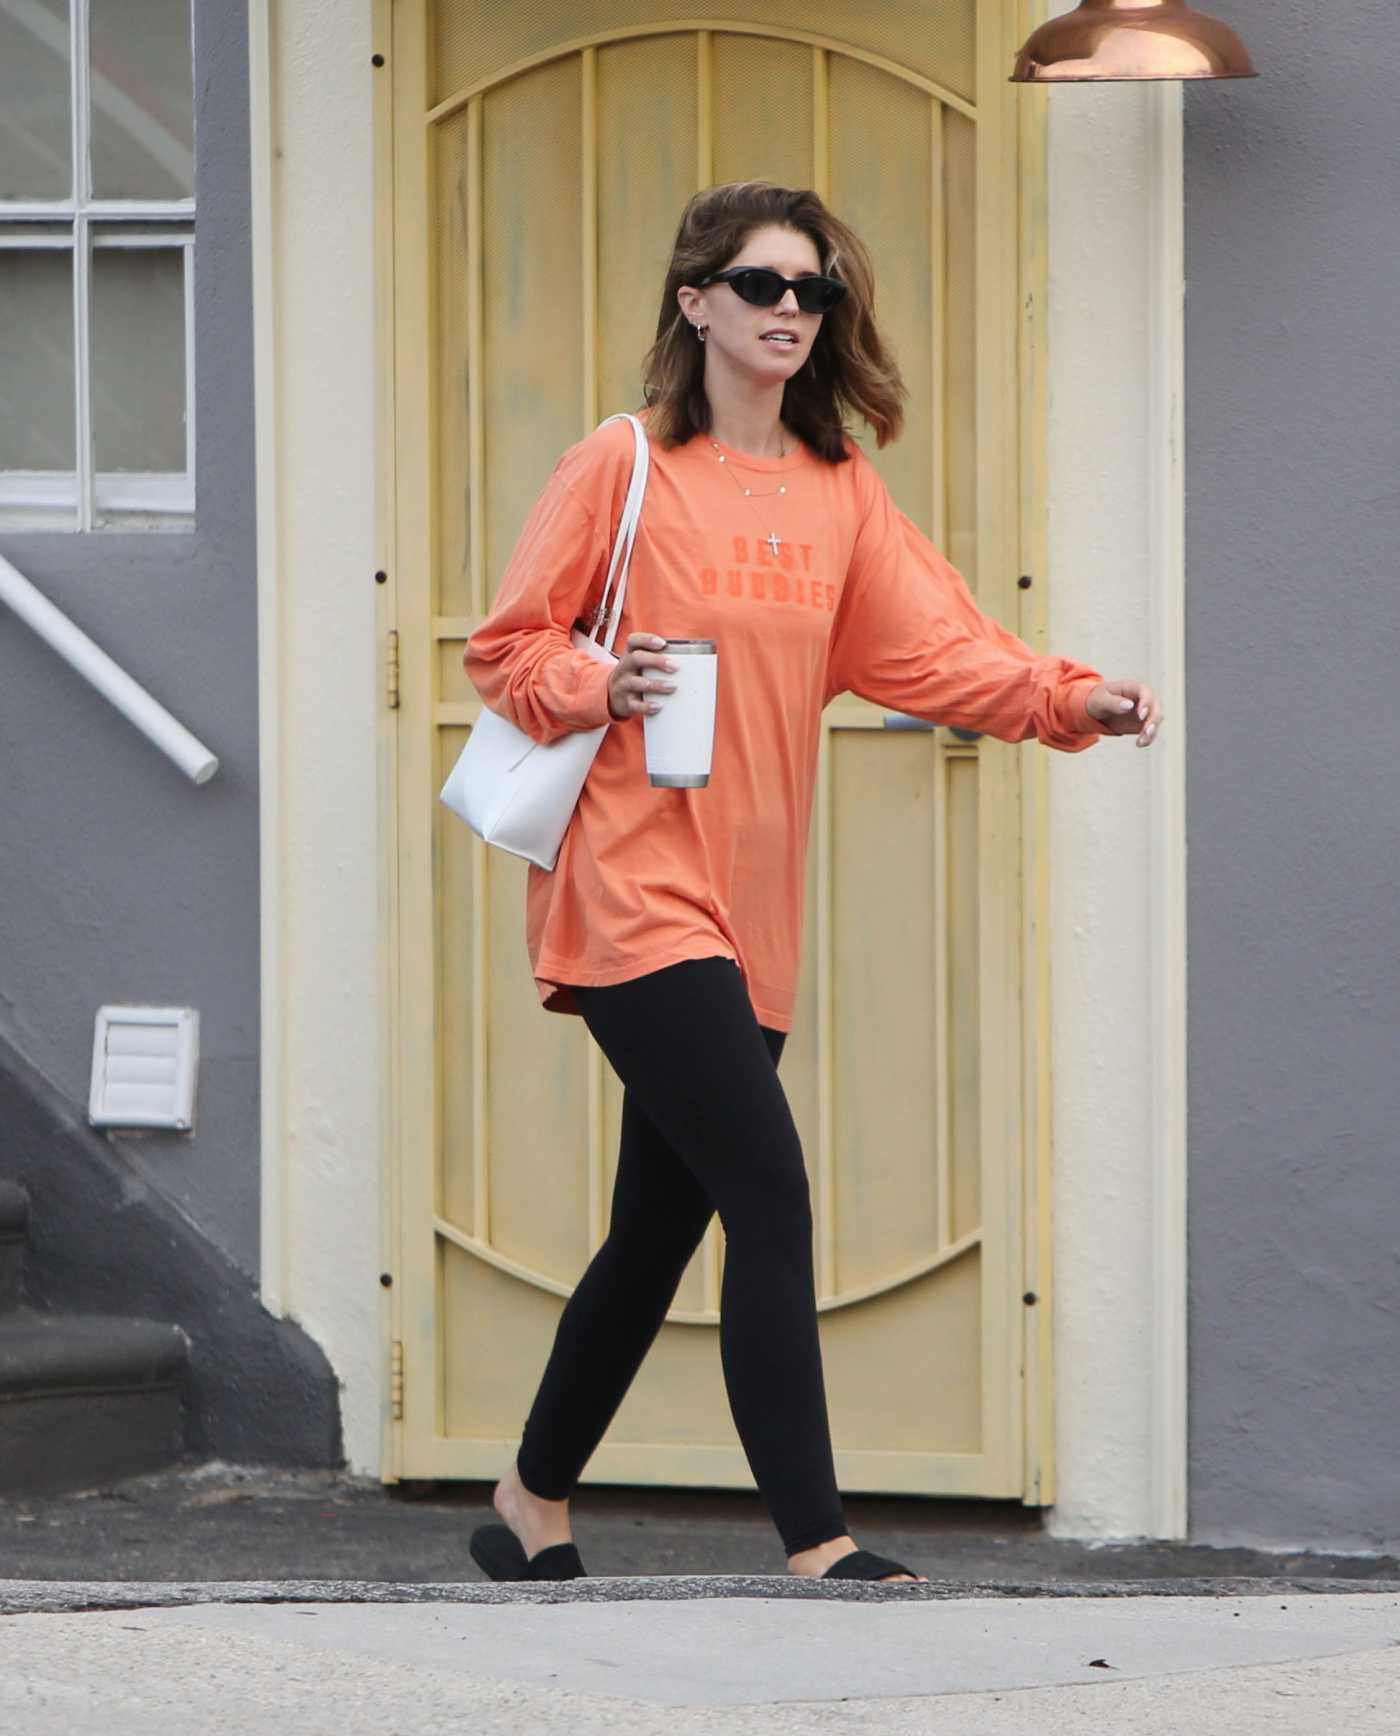 Katherine Schwarzenegger in an Orange Long Sleeves T-Shirt Leaves Her Morning Workout in Brentwood 08/07/2019